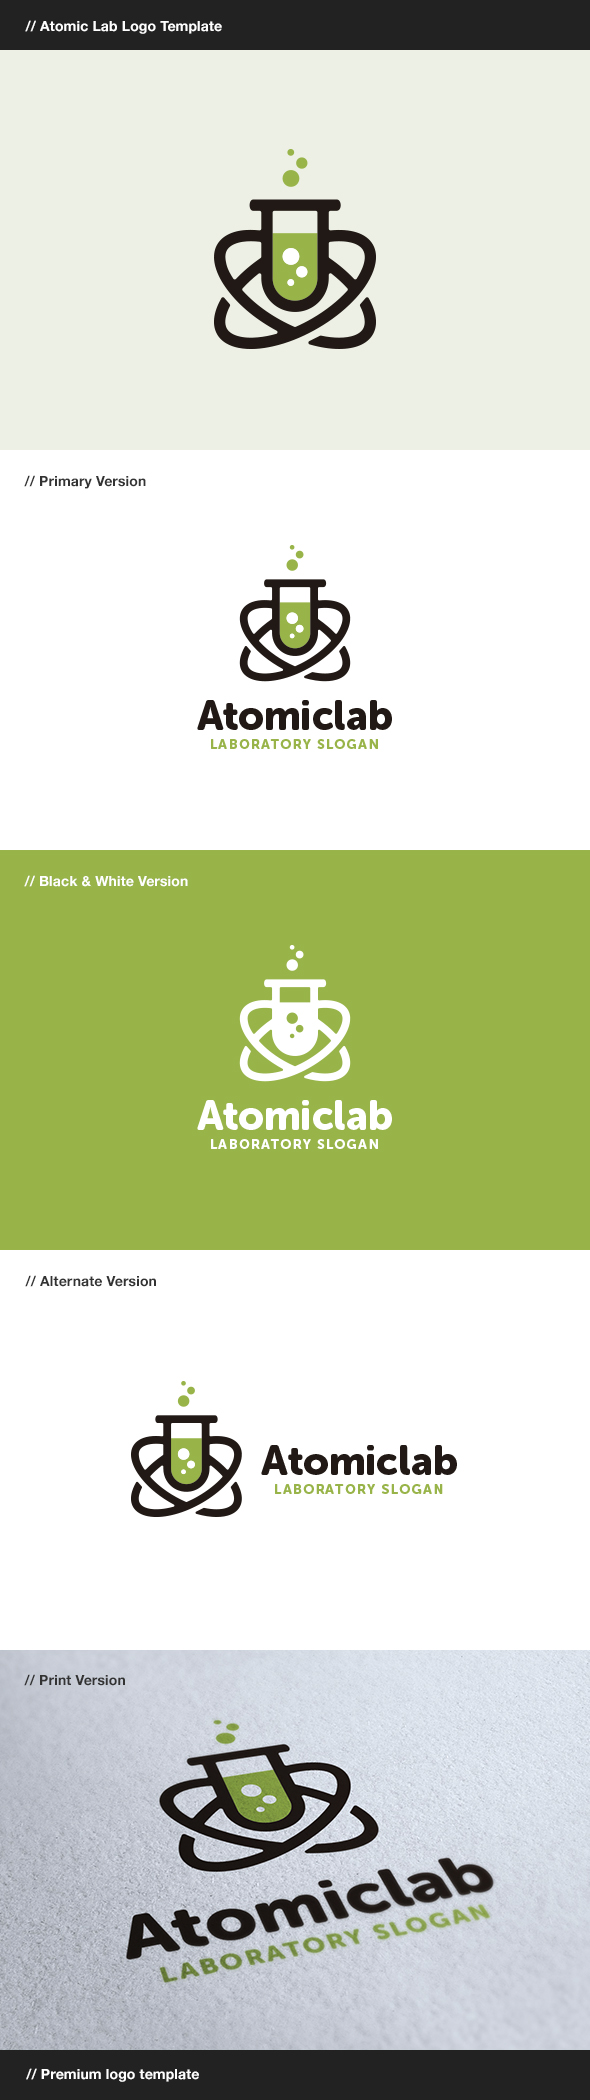 Atomic Lab Laboratory Logo